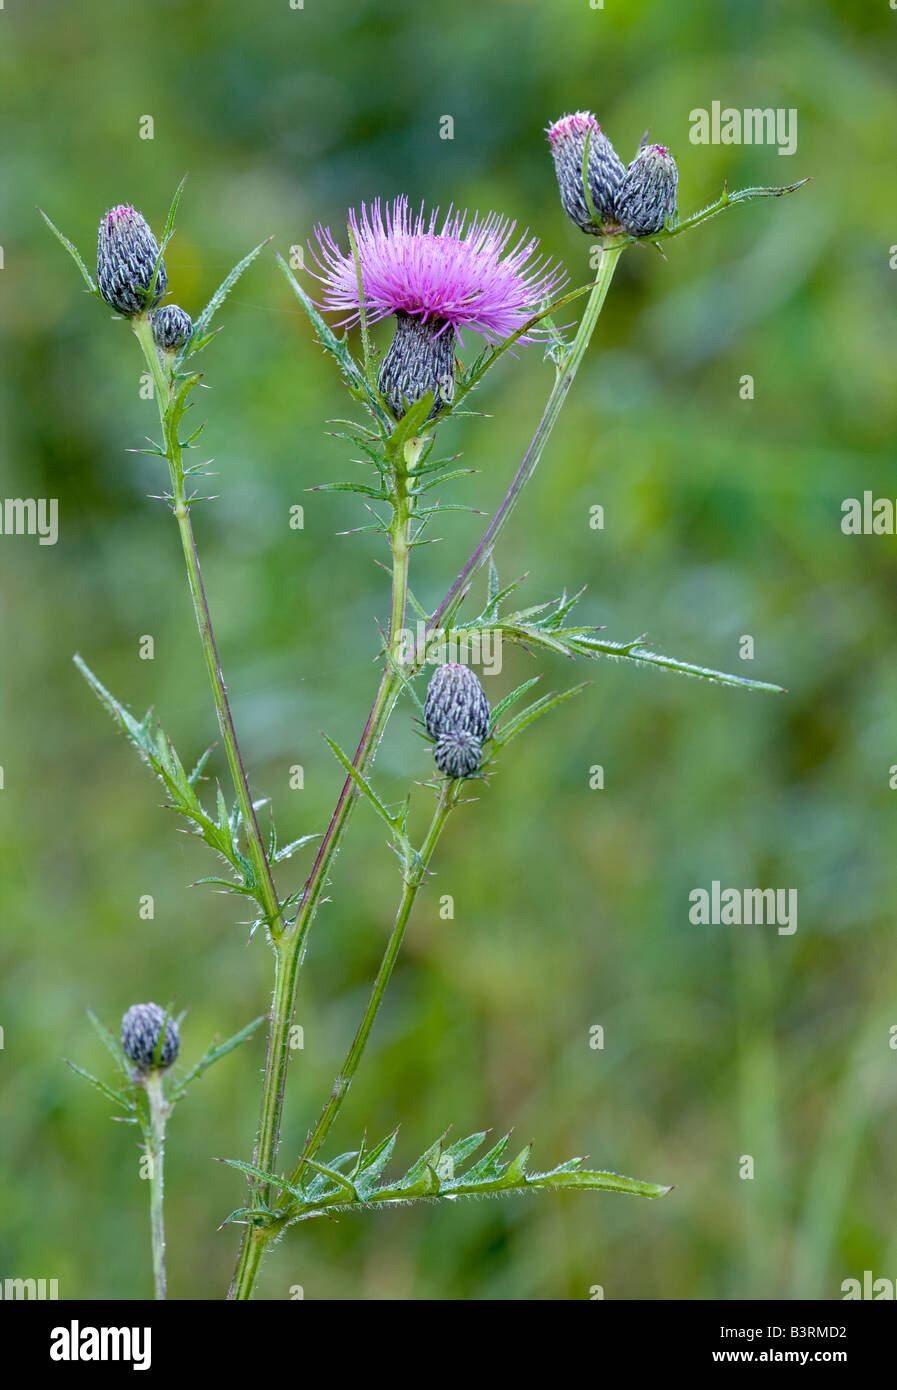 Fen thistle or swamp thistle, Cirsium muticum, Iowa - Stock Image